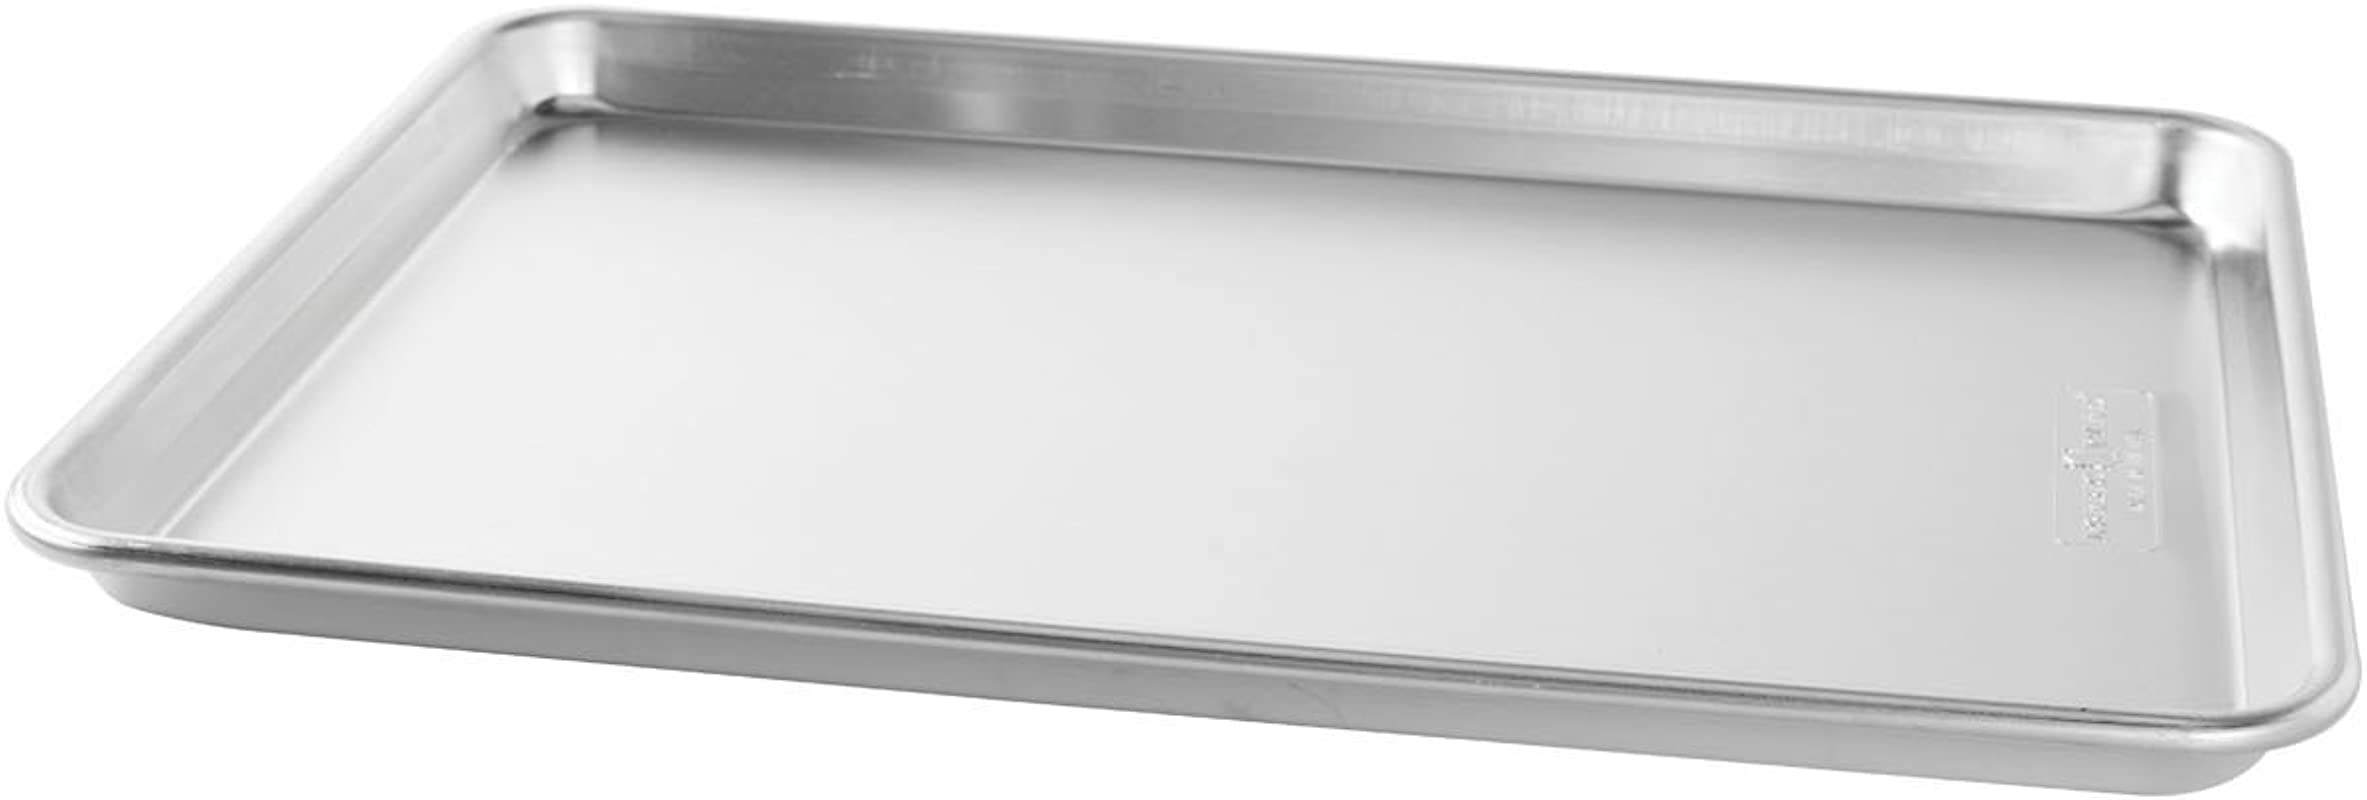 Bakers Commercial Half Baking Sheets Pack Of 2 By Nordic Ware 16 25 L X 11 25 W 1 H